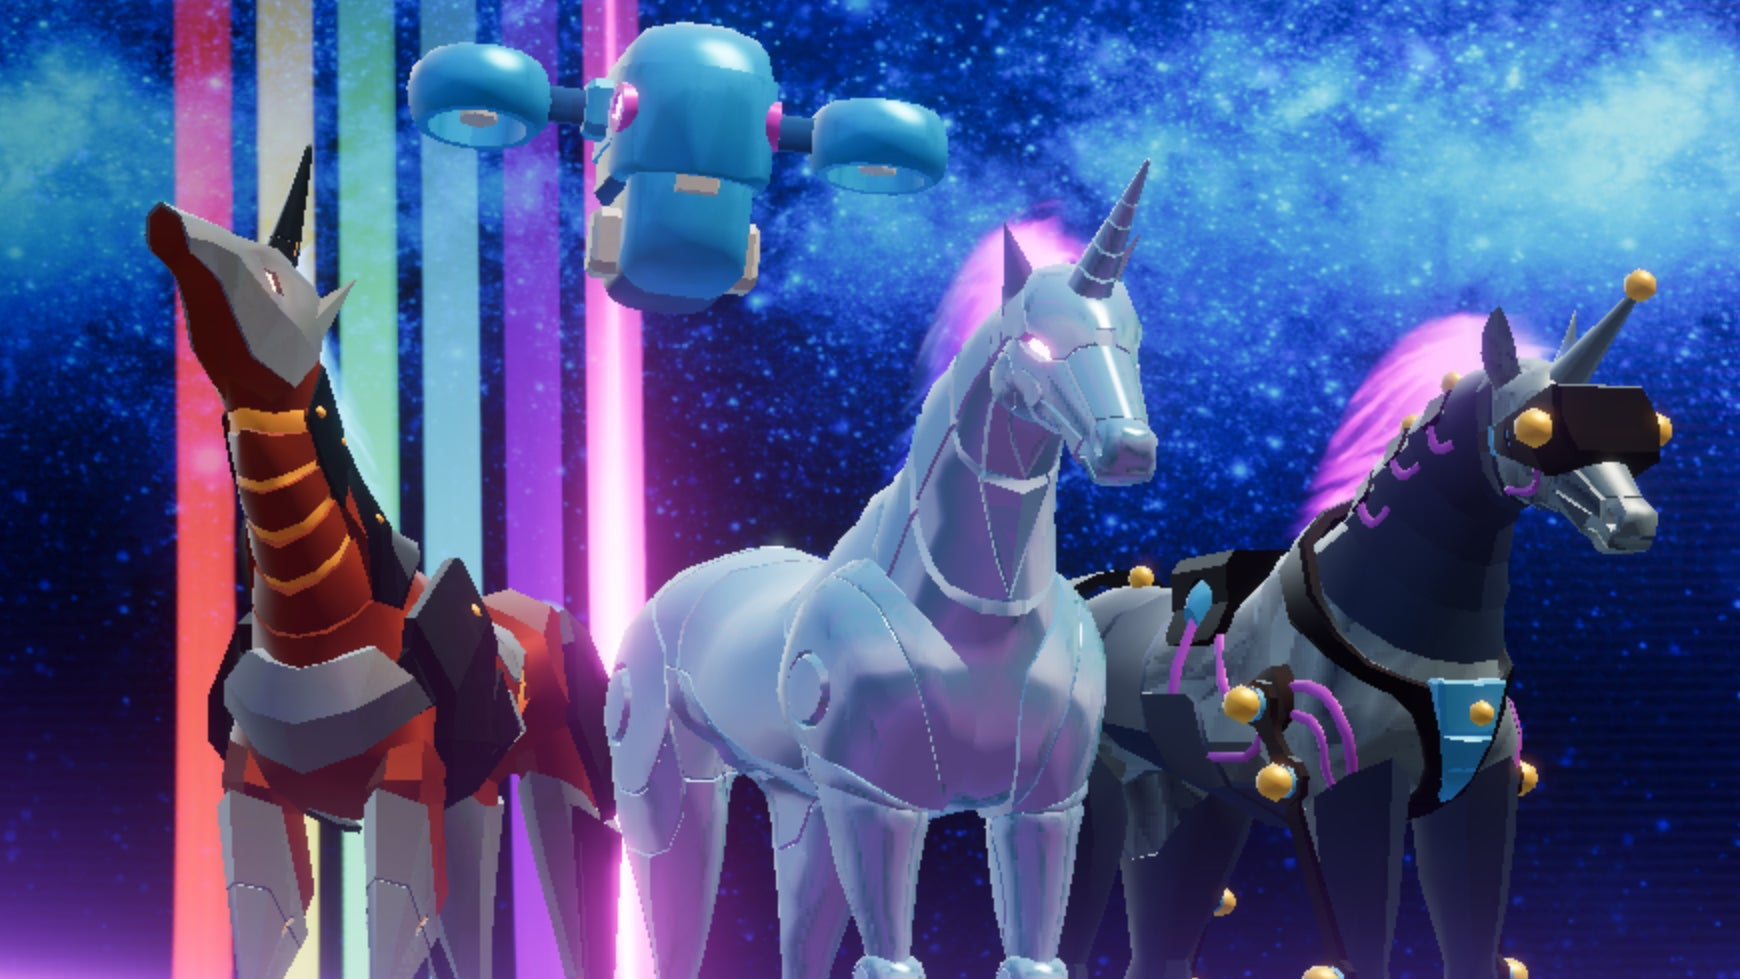 Robot Unicorn Attack Isn't Screwing Around This Time